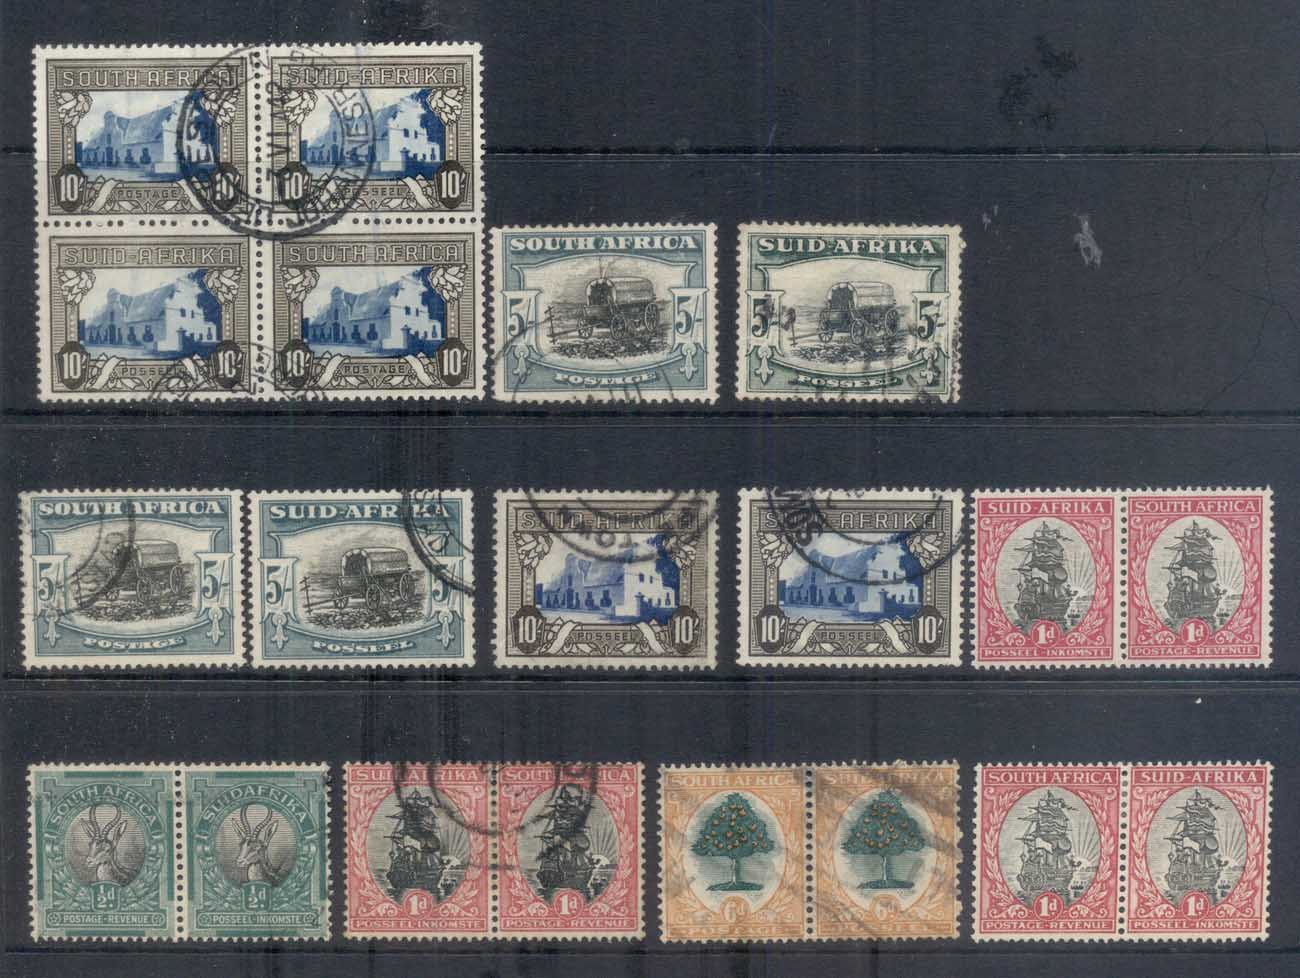 South Africa 1927 on Assorted Pictorials , mixed issues FU